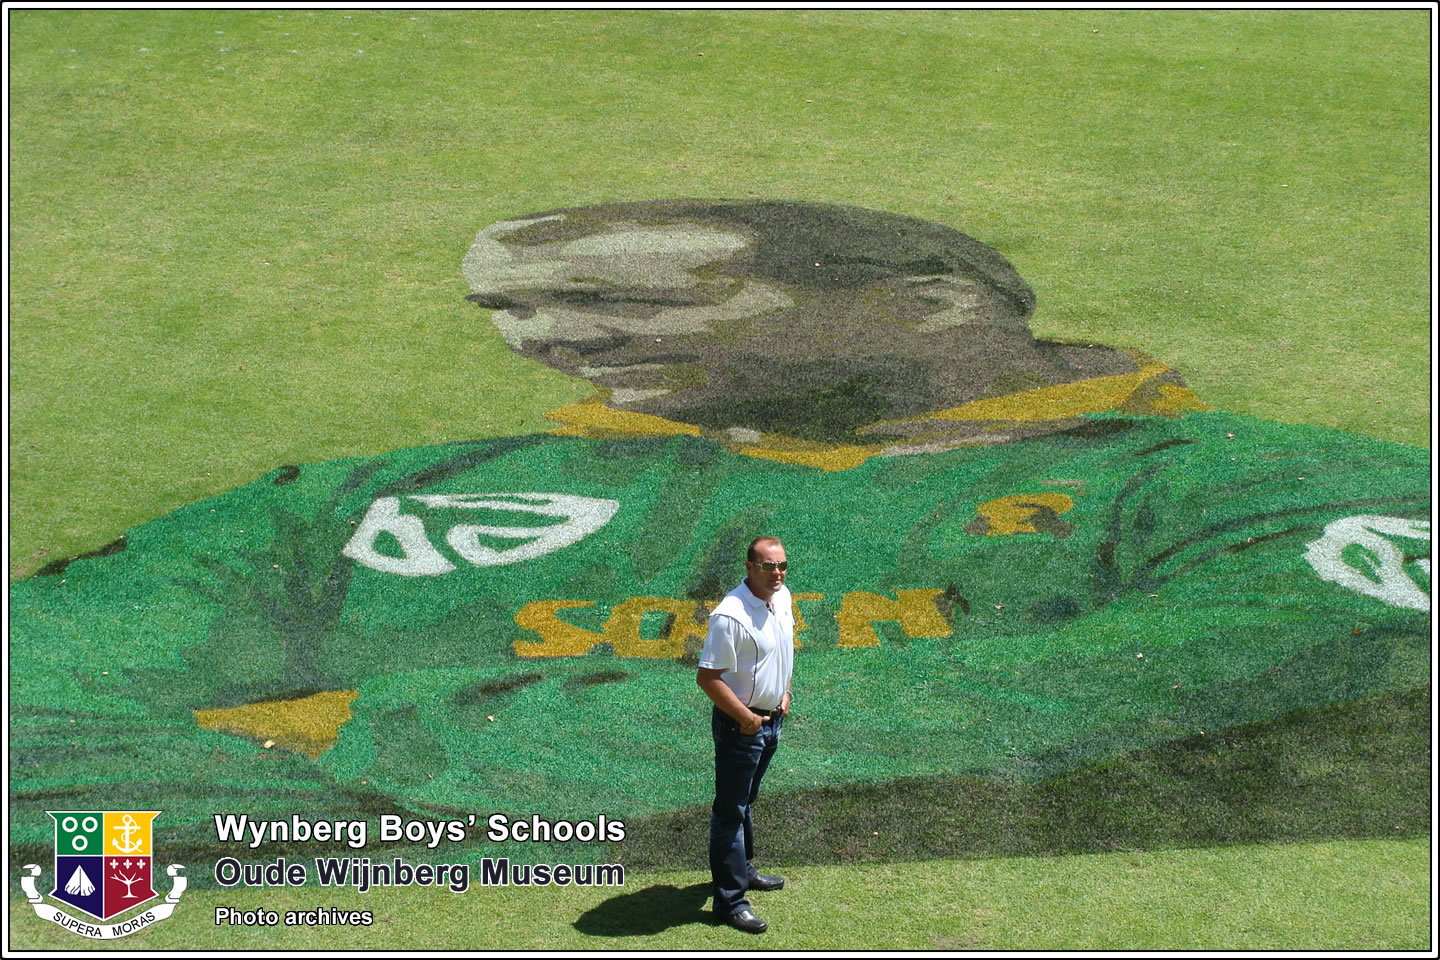 November 2009: The Jacques Kallis Oval at Wynberg Boys' High School